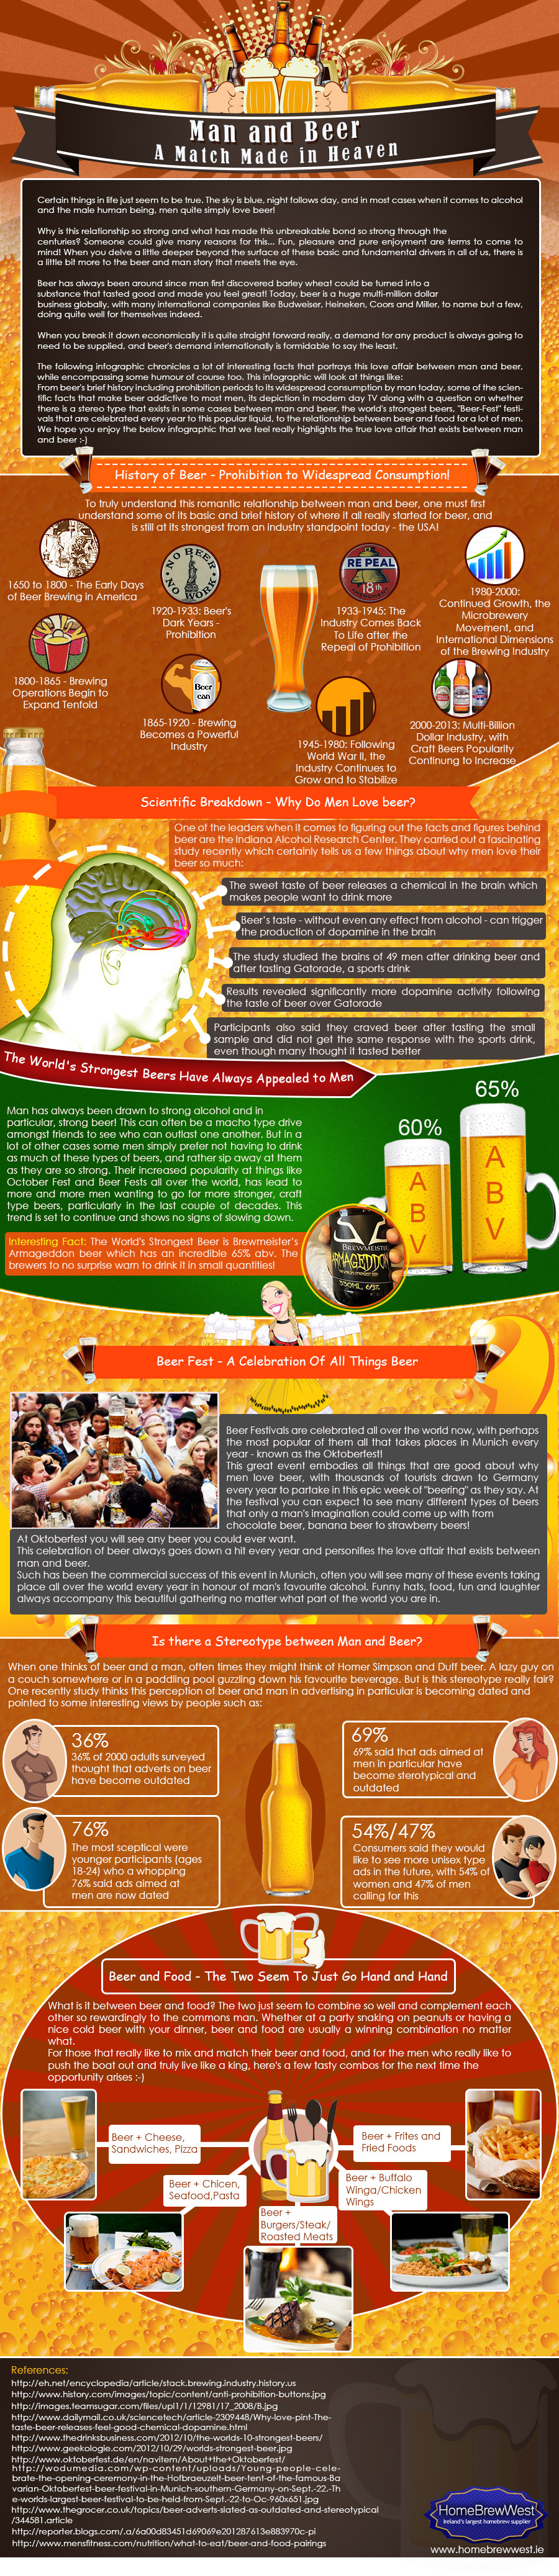 Infographic about men and beers